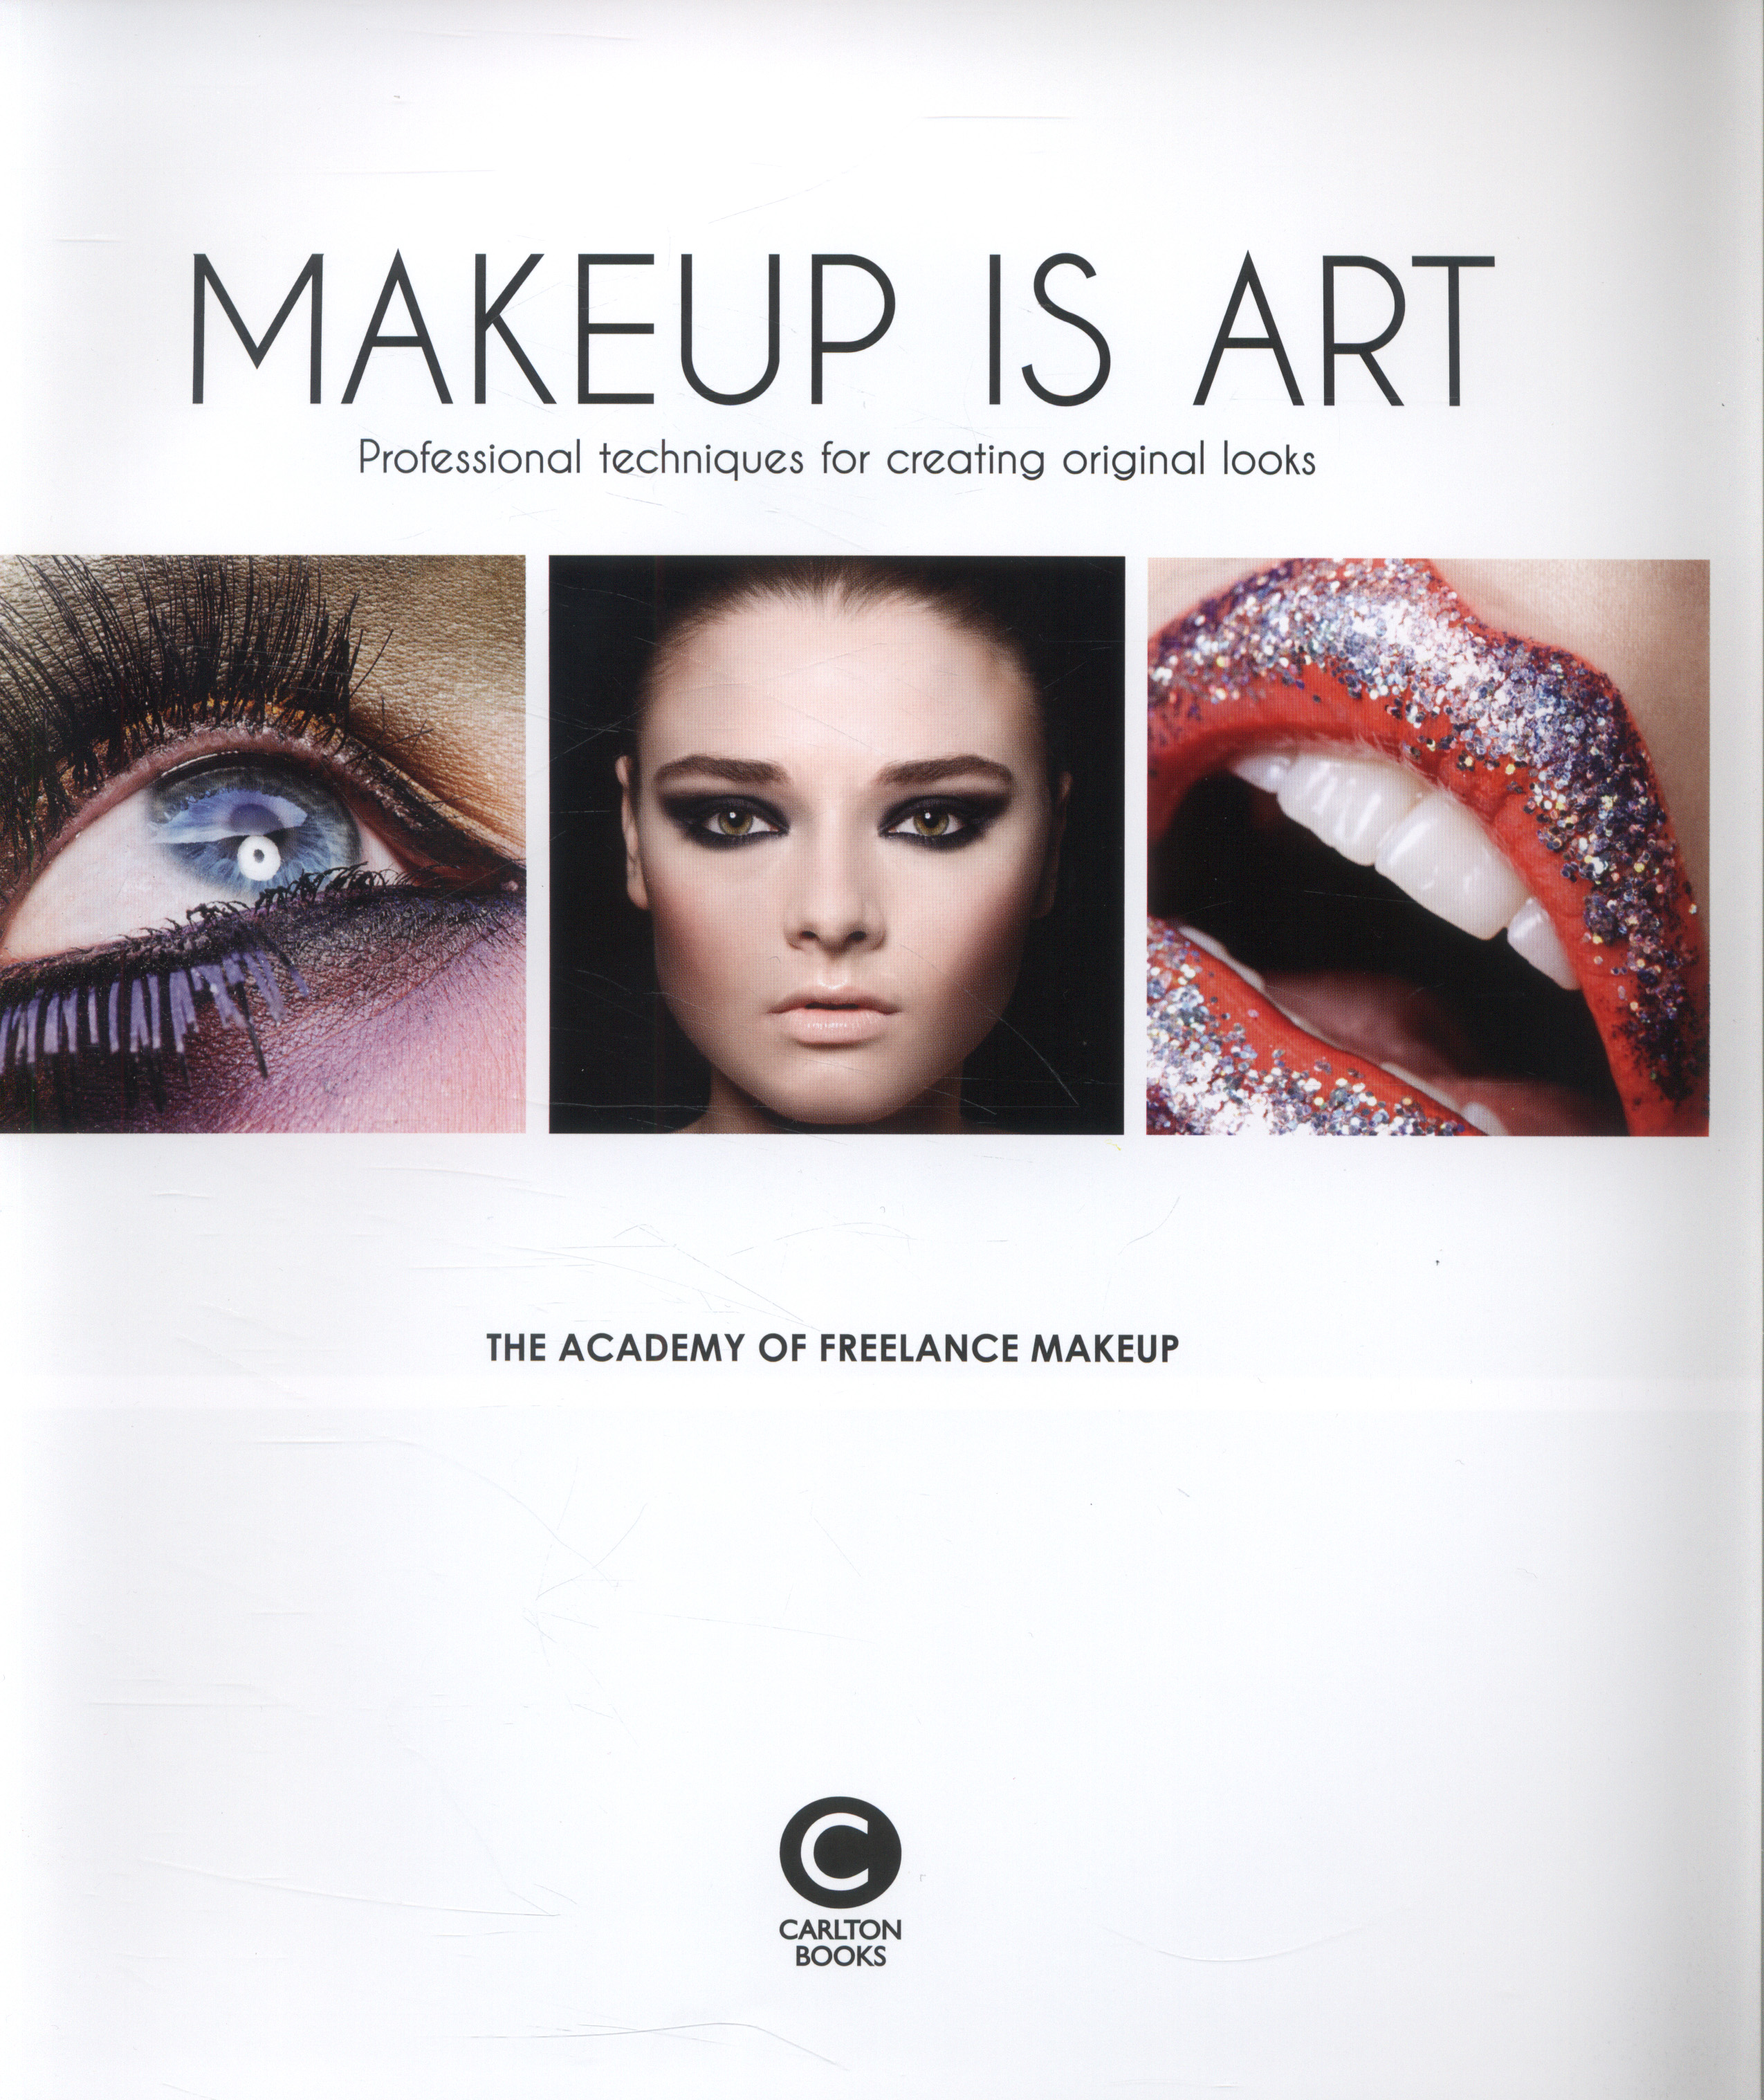 Makeup Manuals Ebook Webasto Thermo Top Z C Wiring Diagram Array Is Art Professional Techniques For Creating Original Looks Rh Brownsbfs